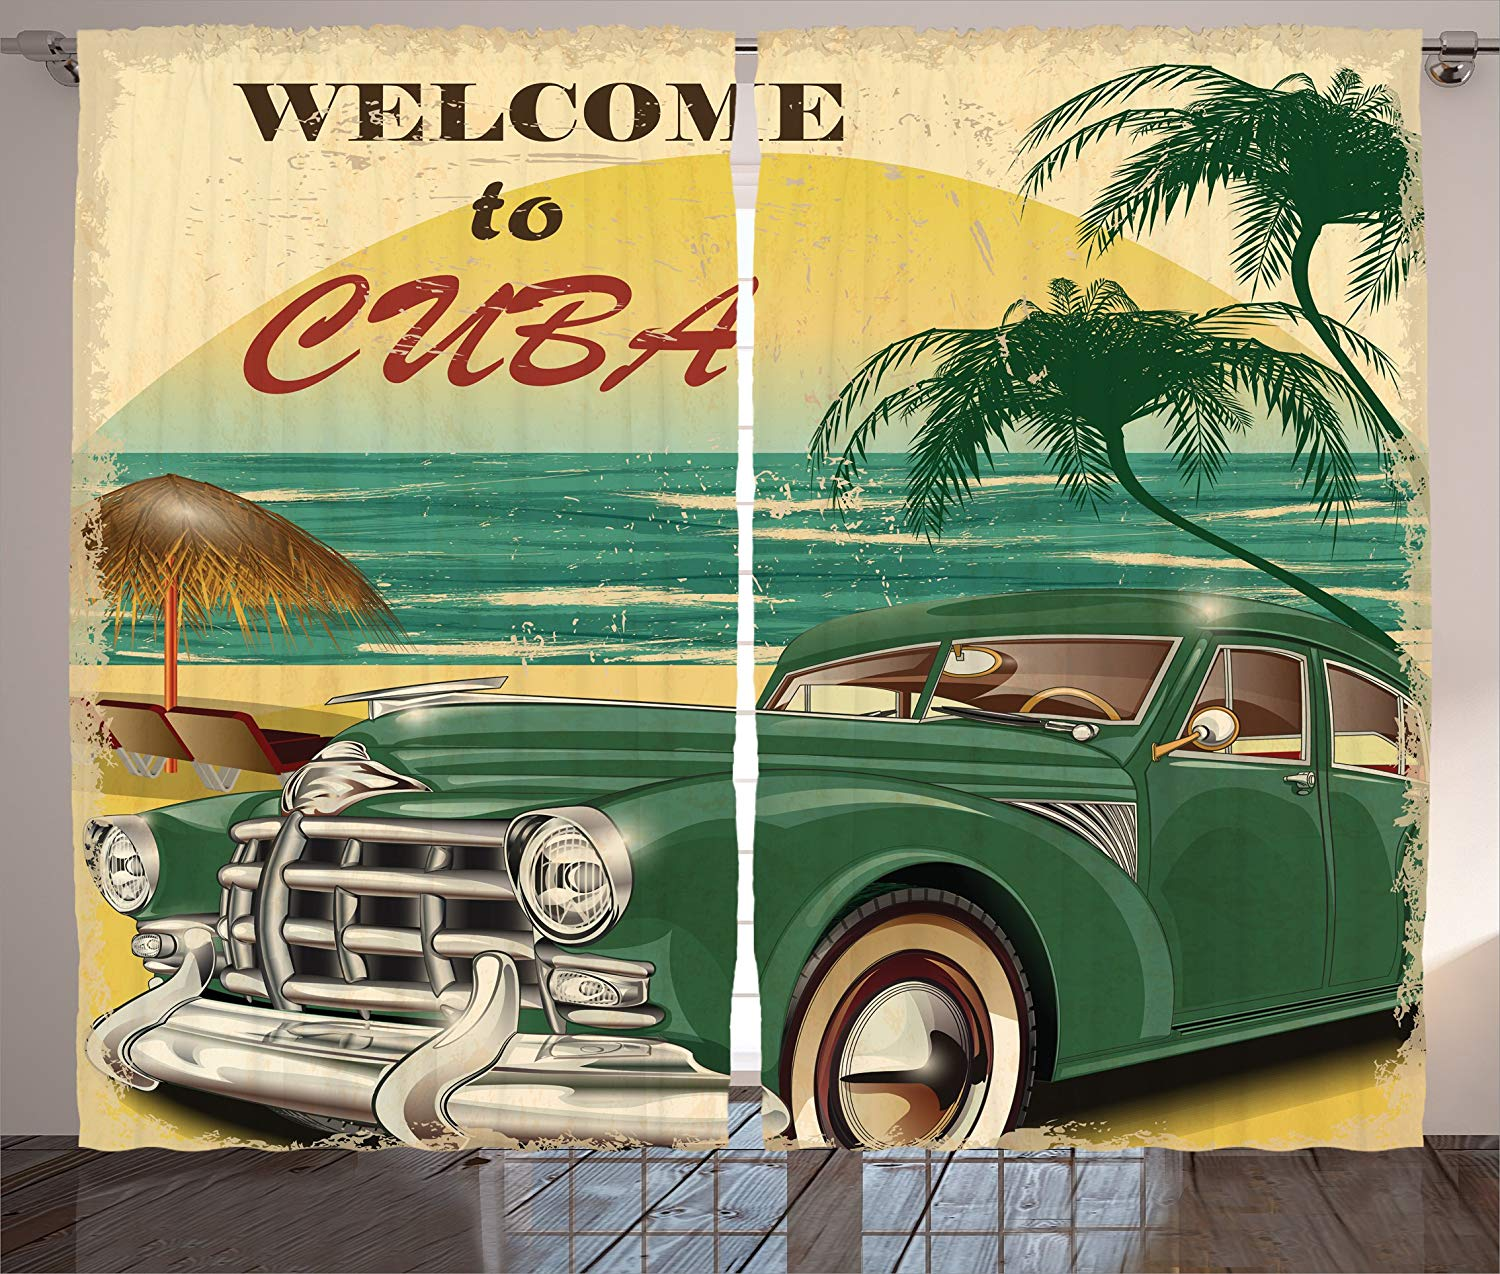 1950s Curtains Nostalgic Welcome to Cuba Artsy Print Classic Car Beach Ocean Palm Trees Living Room Bedroom 2 Panel Set Cream image